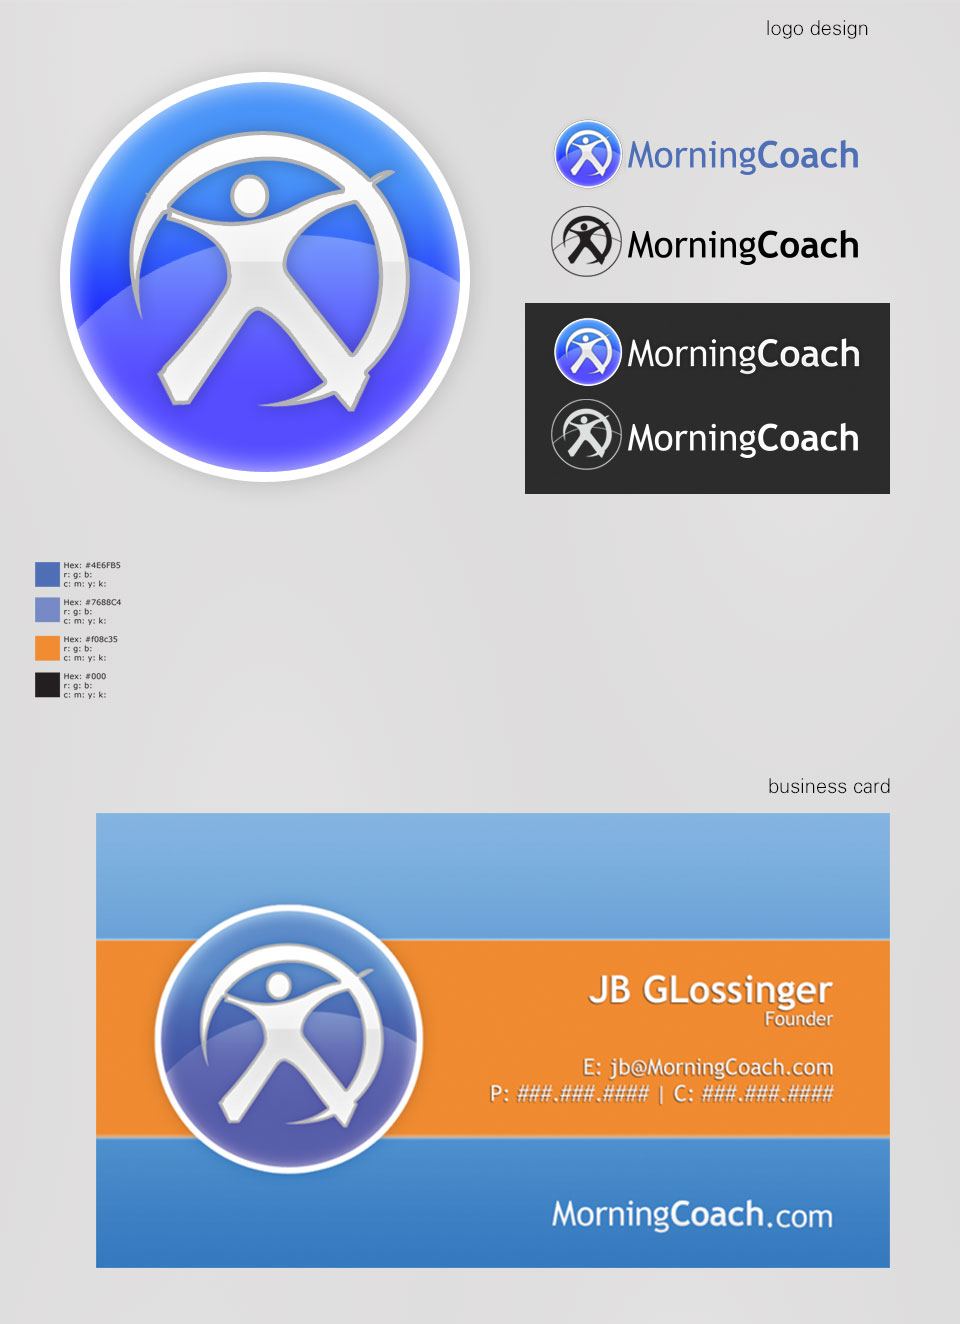 MorningCoach Branding